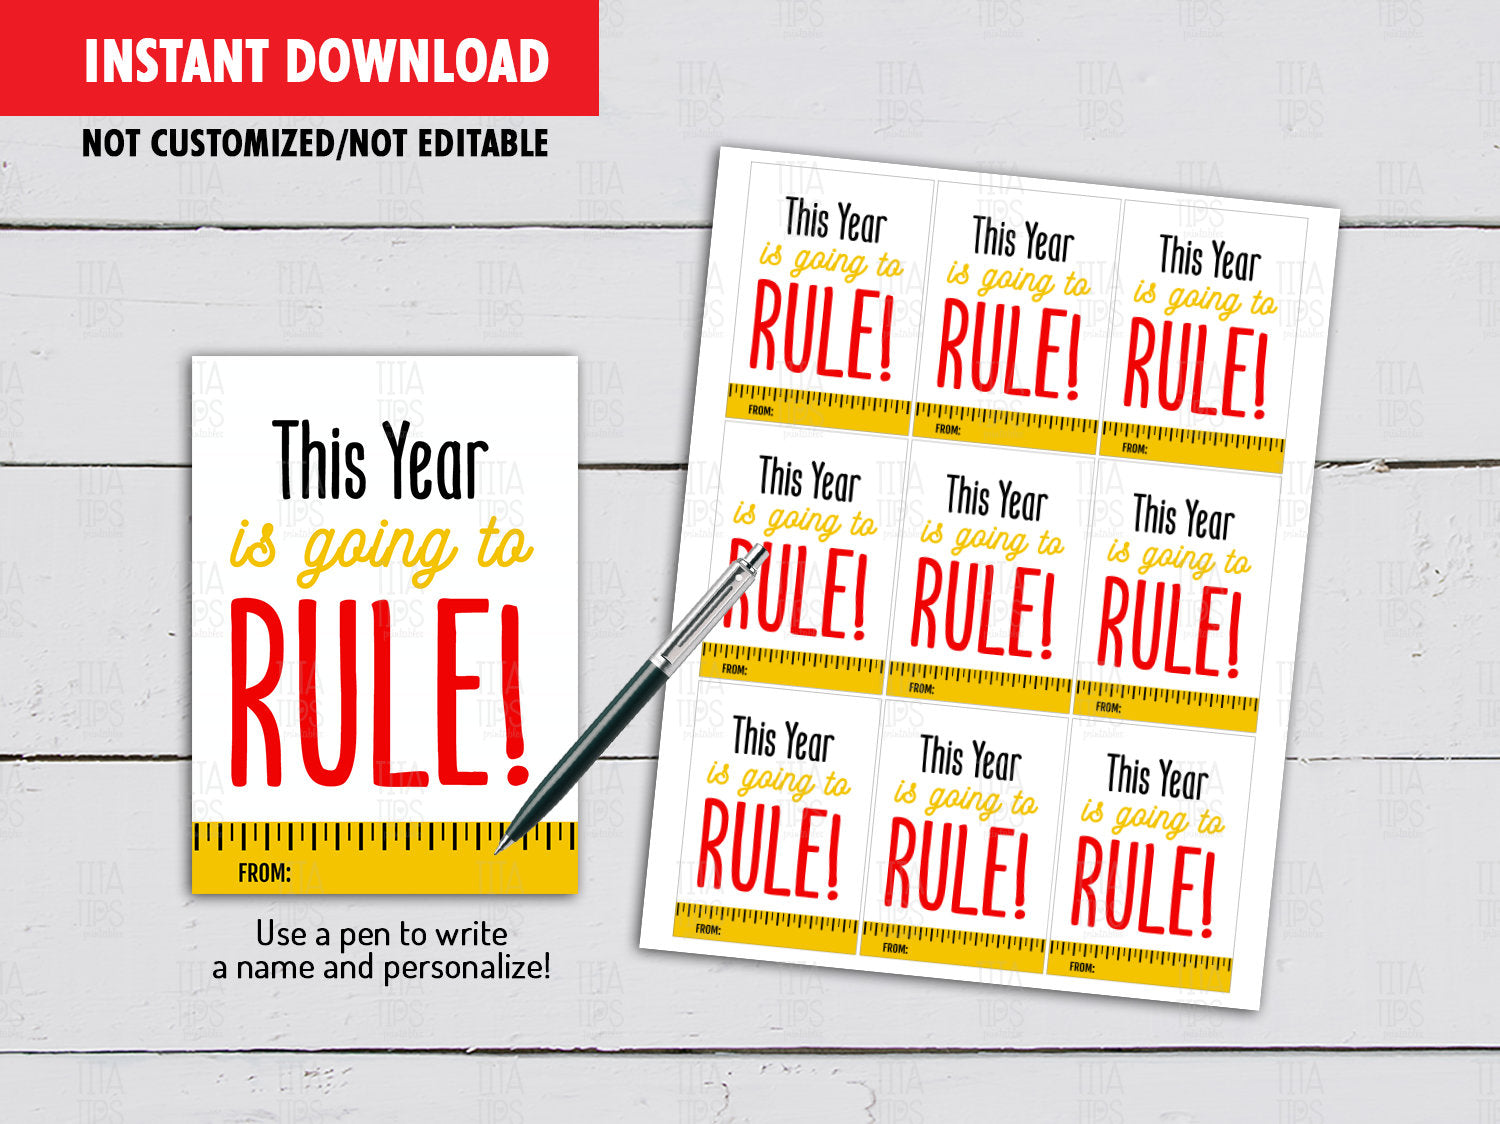 This year is going to RULE Gifts Tag Ideas, Instant Download - TitaTipsPrintables